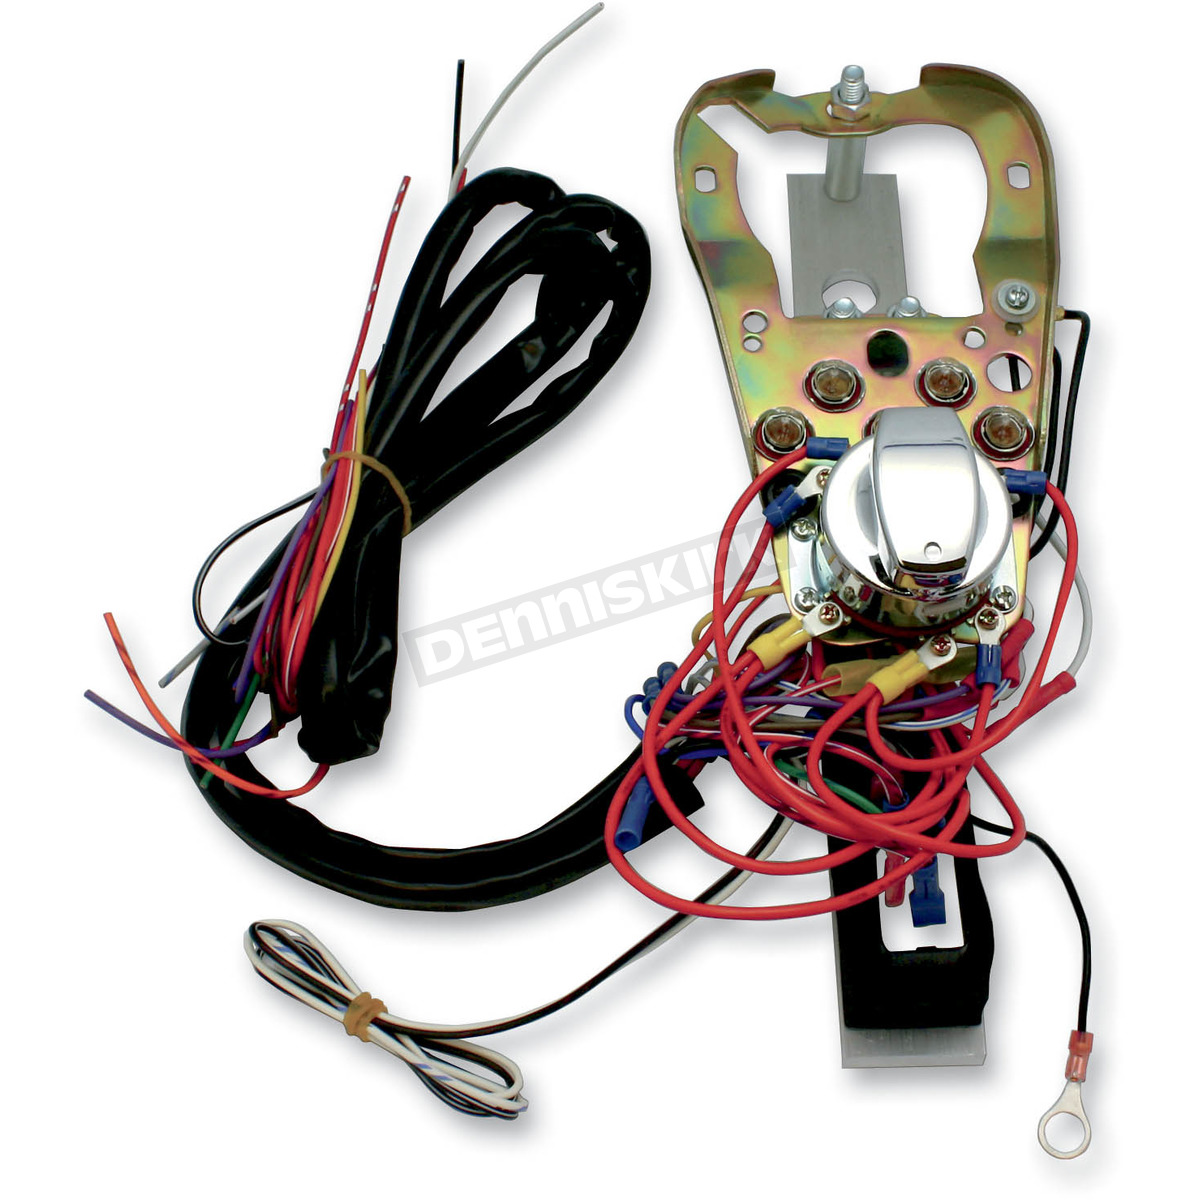 22010139 pro one dash base with wire harness kit 400909 harley davidson harley wiring harness kits at reclaimingppi.co